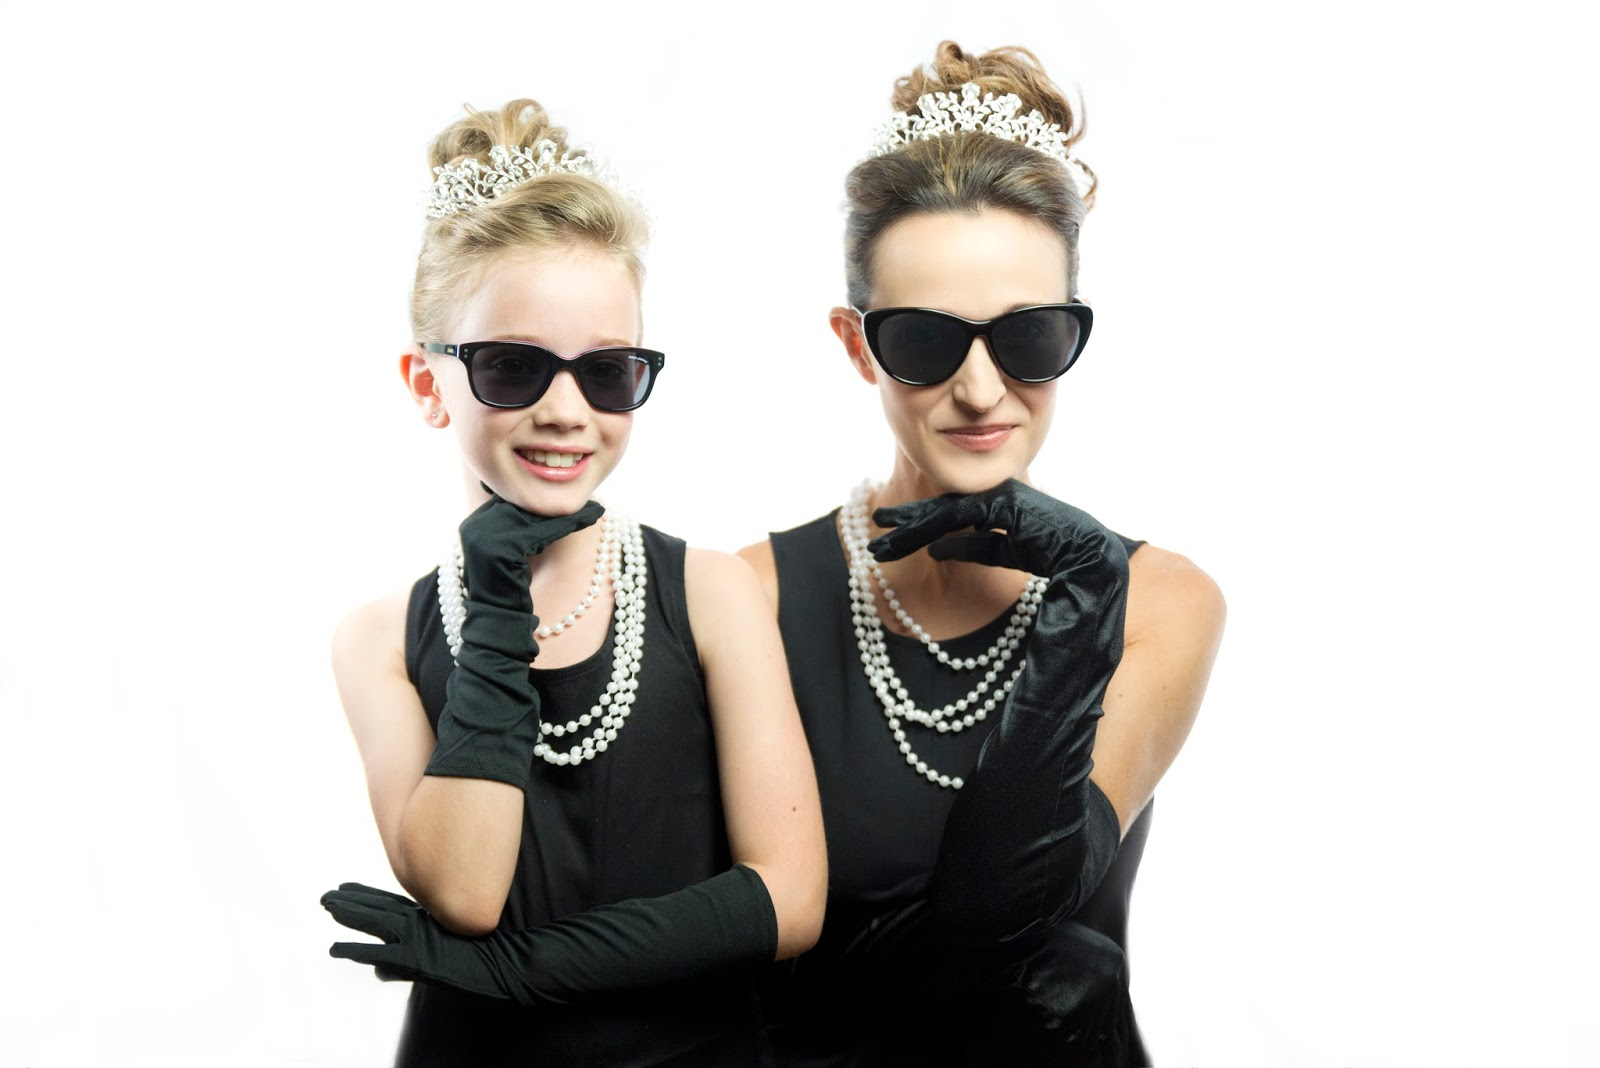 Holly Golightly Mother-Daughter Halloween Costumes  sc 1 st  erinu0027s faces & erinu0027s faces: Holly Golightly Mother-Daughter Halloween Costumes